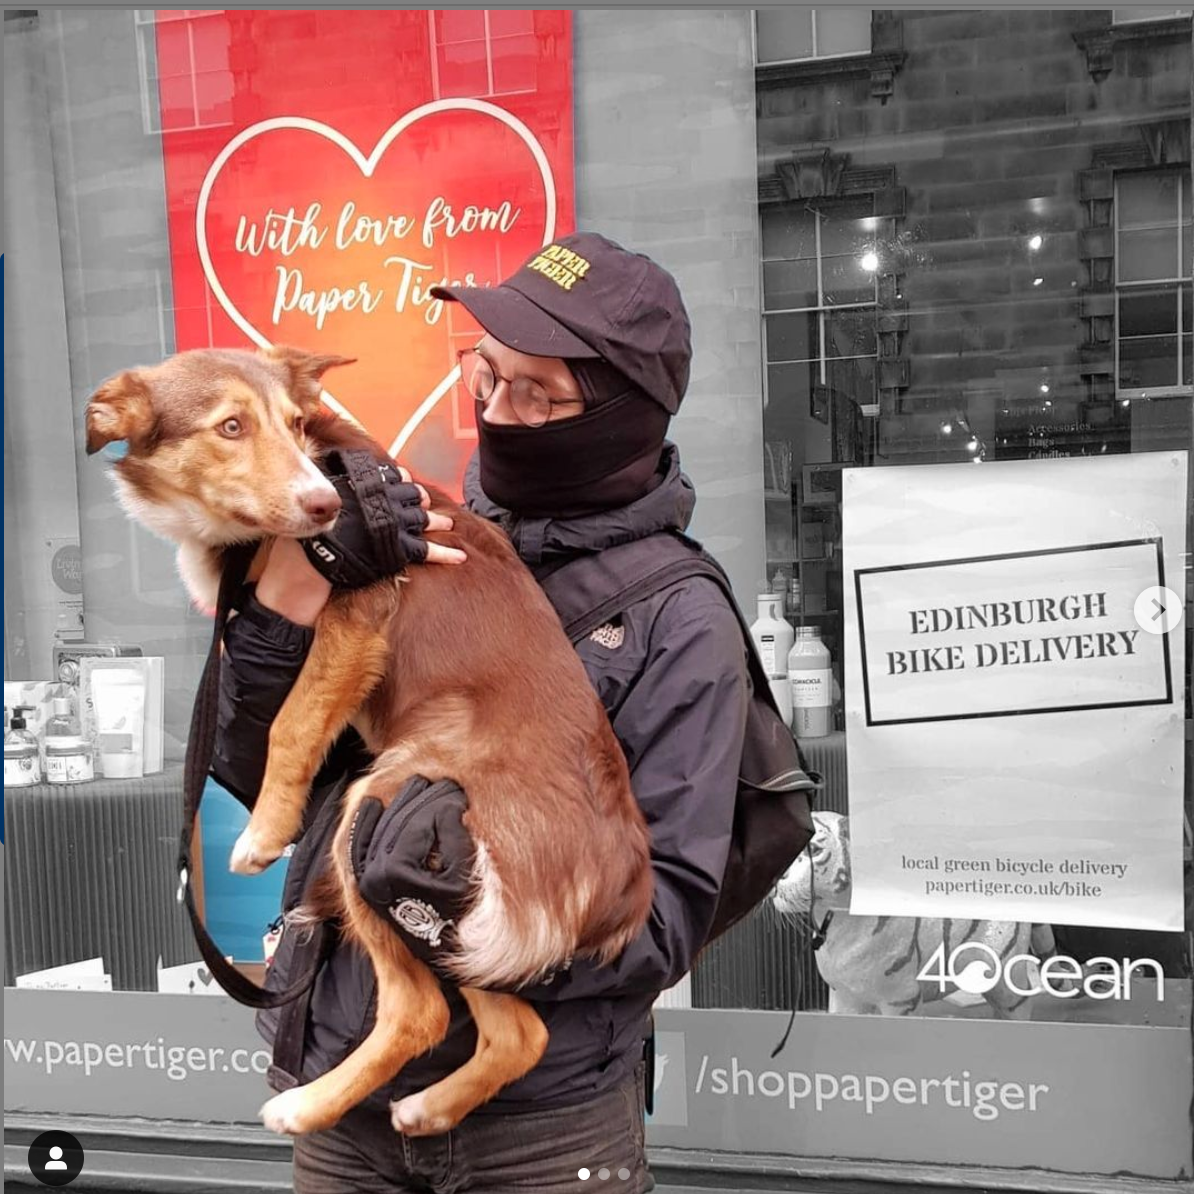 Above: Paper Tiger in Edinburgh is offering a bicycle delivery service for Valentine's Day – Clementine shows Liam some love before he heads off on his delivery duties.